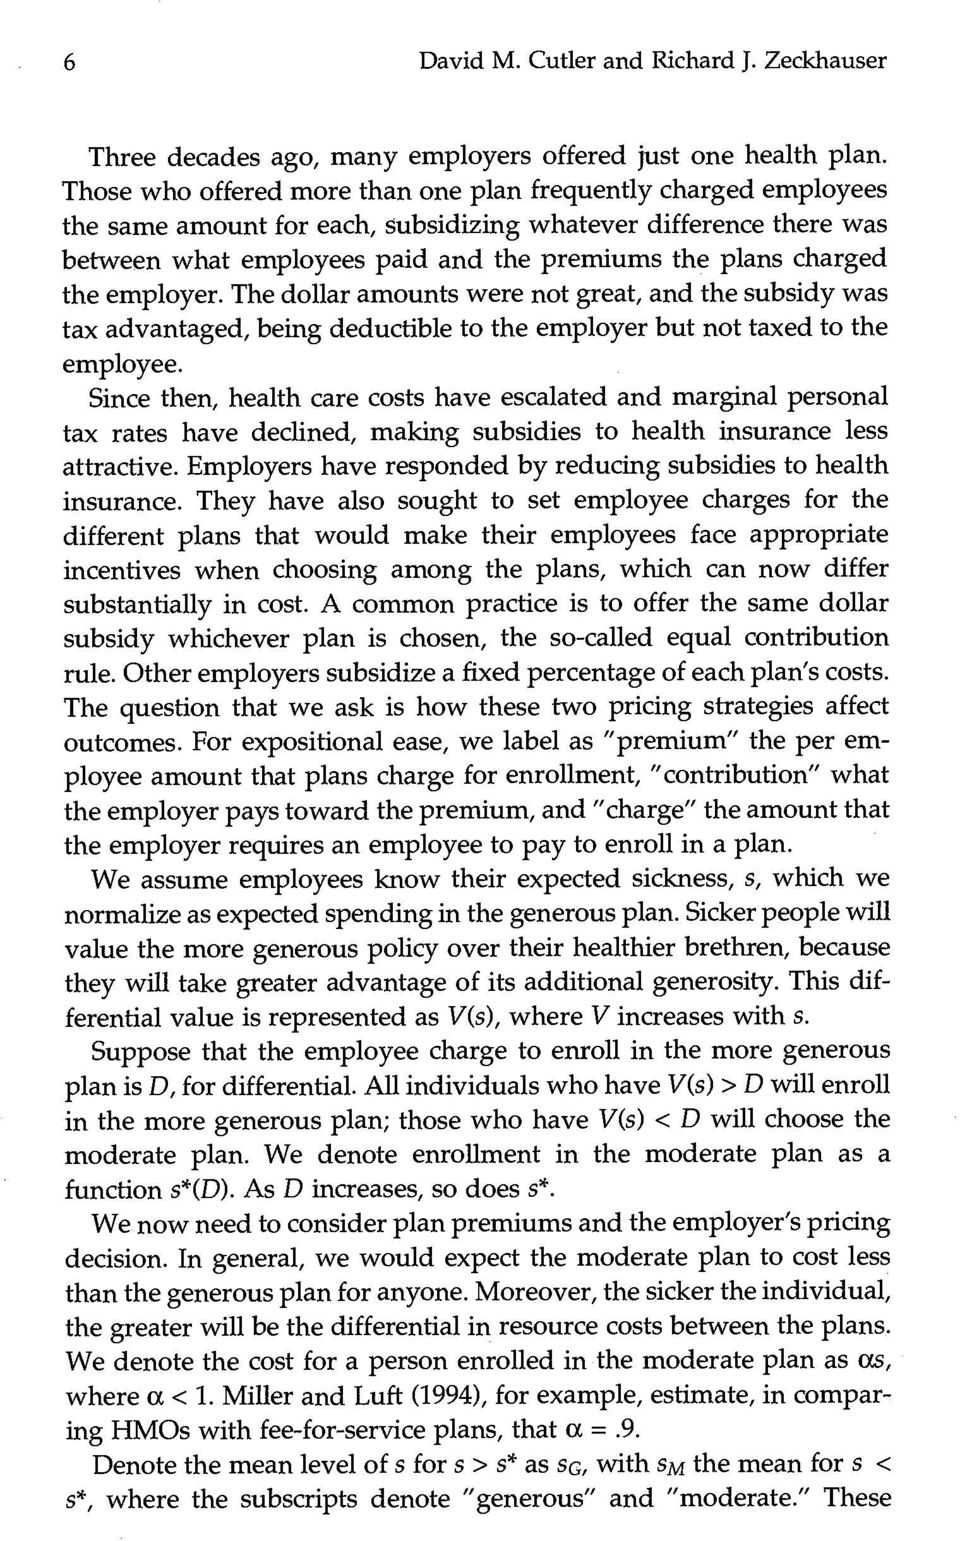 the employer. The dollar amounts were not great, and the subsidy was tax advantaged, being deductible to the employer but not taxed to the employee.